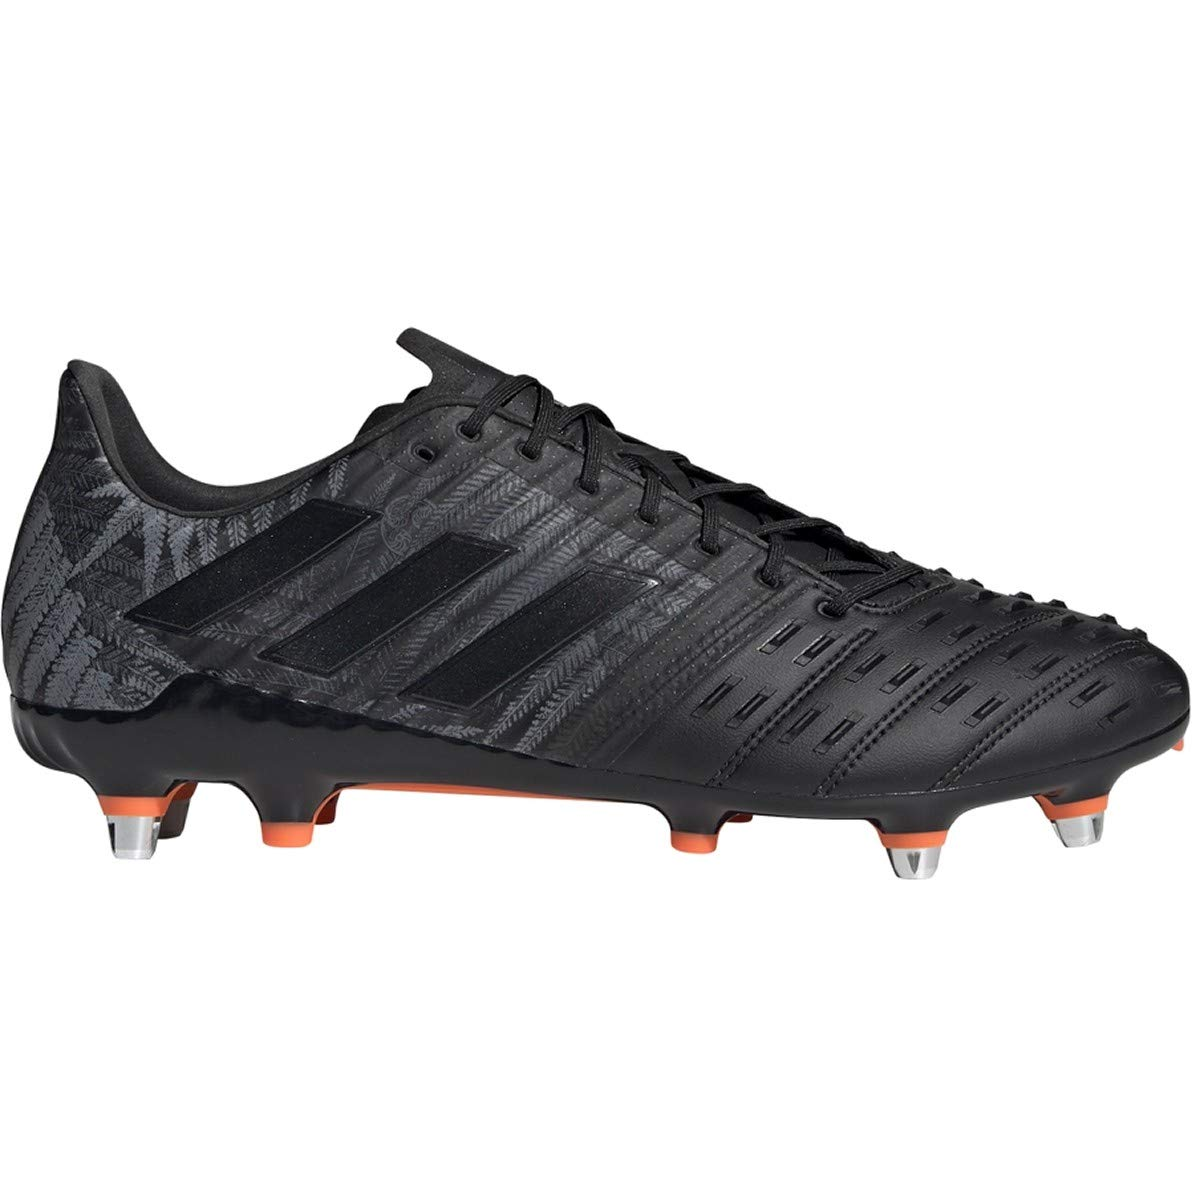 adidas Predator Malice Control SG Cleat - Men's Rugby Core Black/Solar Orange/White by adidas